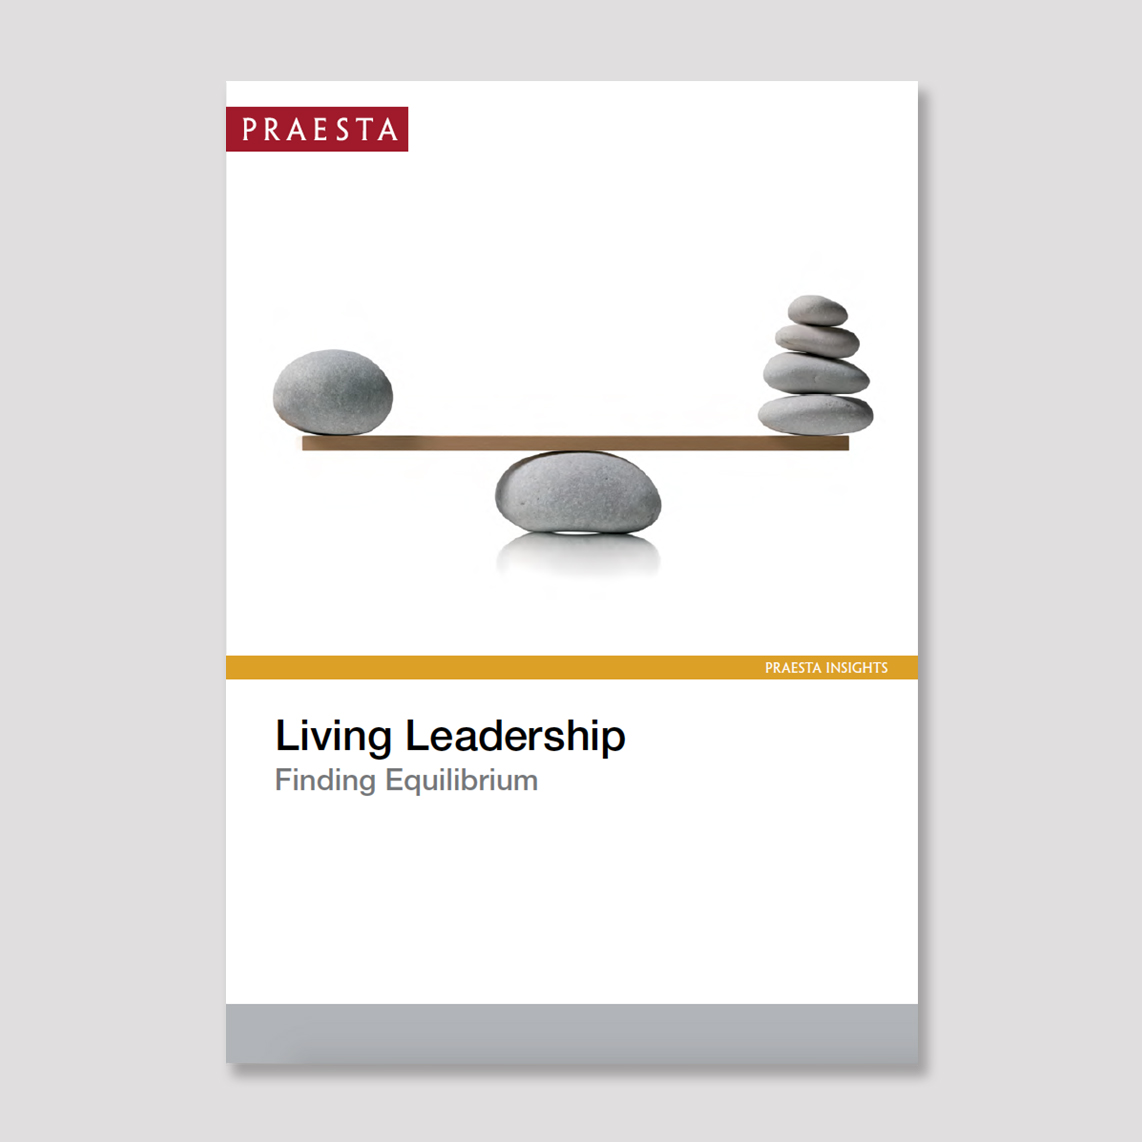 Living Leadership   Finding Equilibrium   Living leadership is about fully embracing your leadership challenges and opportunities. Leading well is about bringing all your experiences to bear, while not trying too hard and exhausting yourself.   Download PDF